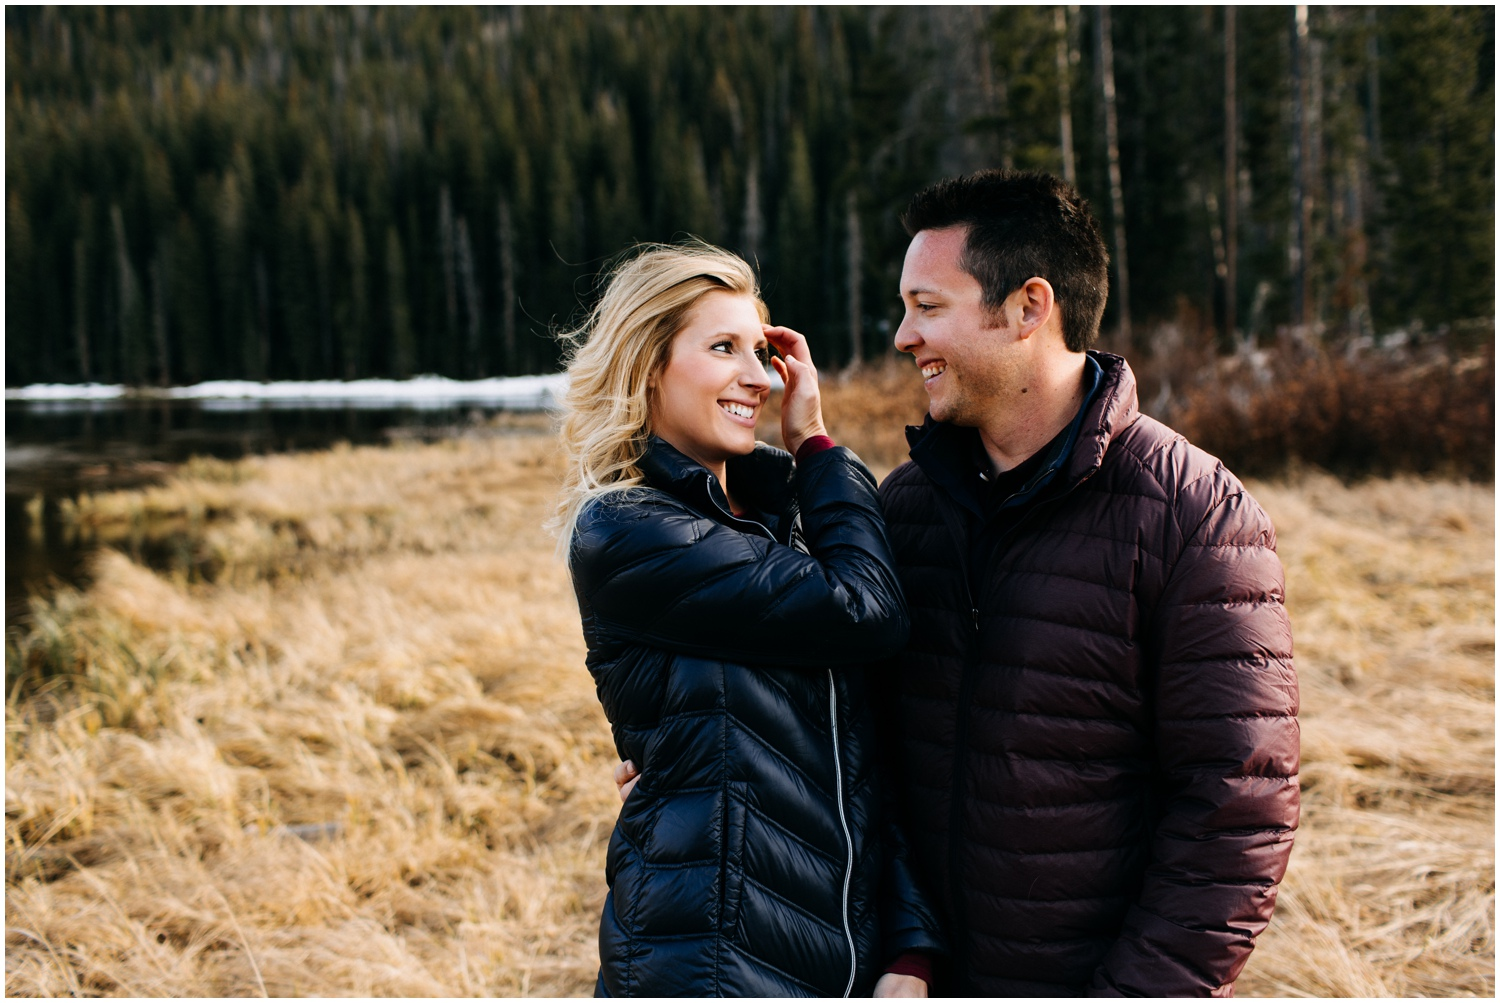 adventure_photo_engagement_session_vail_colorado_taylor_powers__0010.jpg